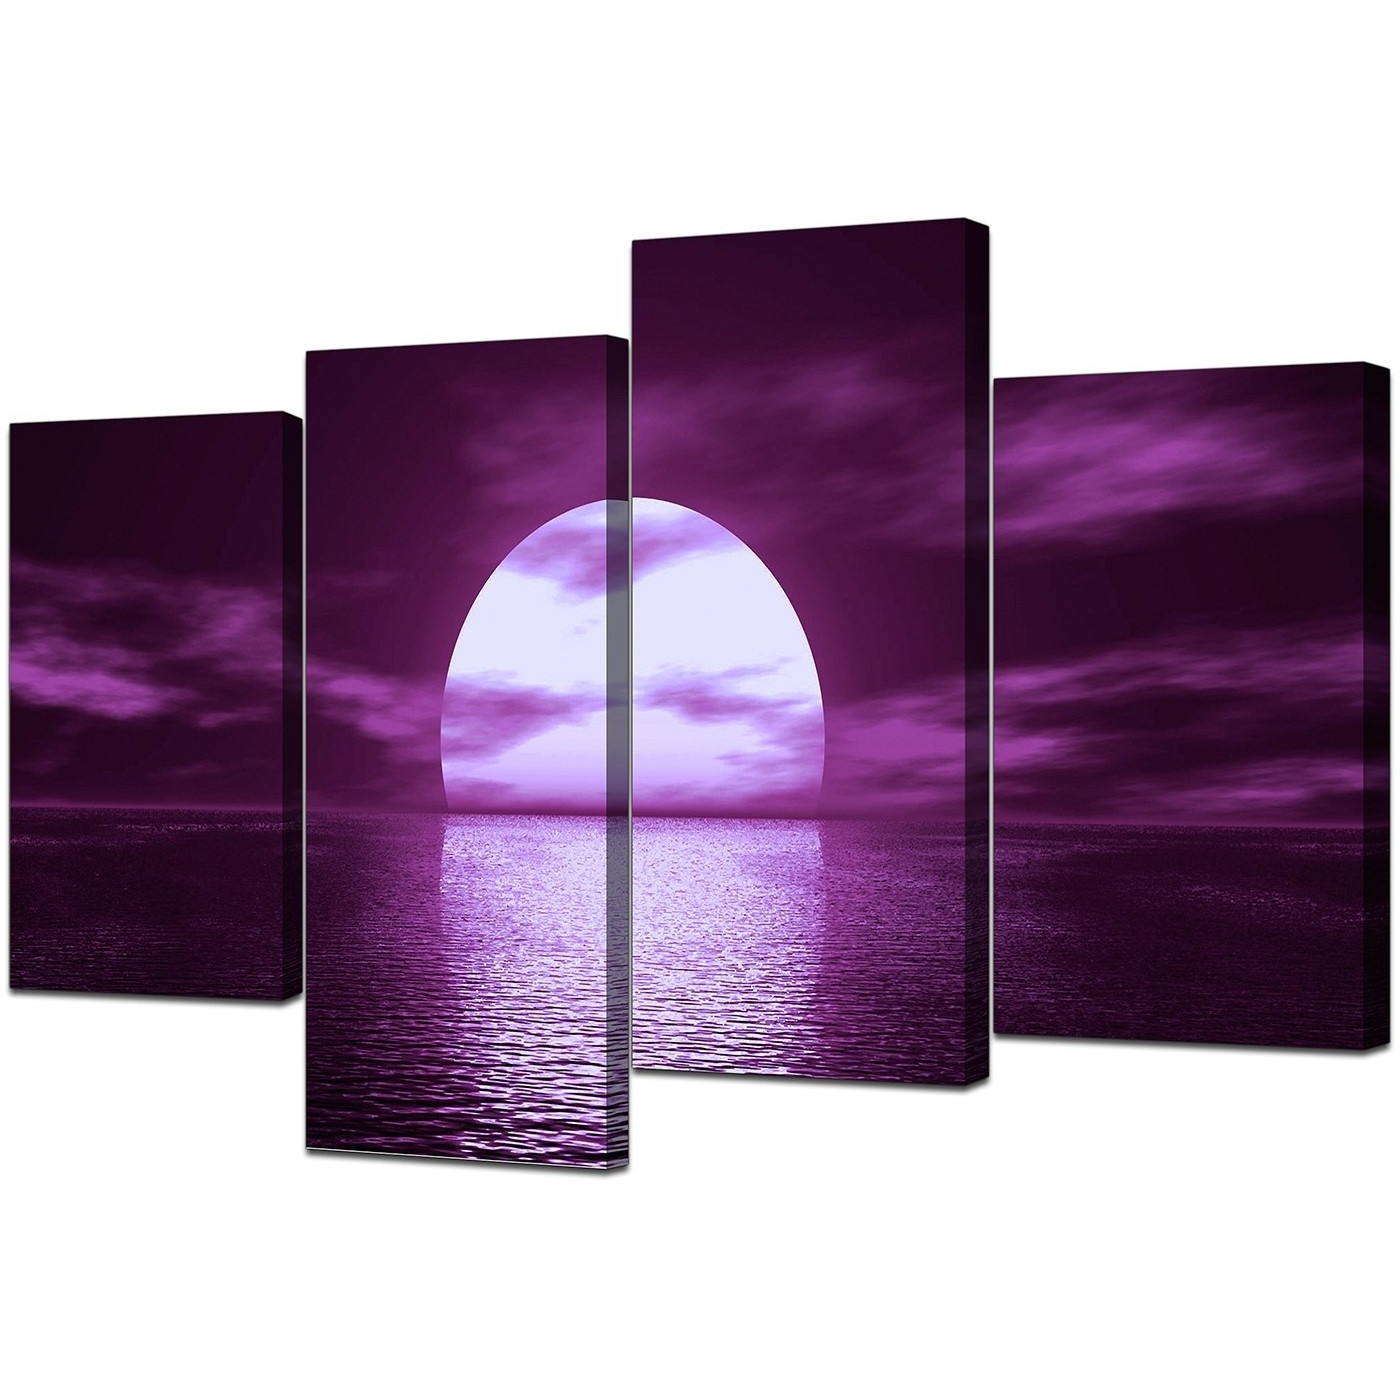 Current Purple Wall Art Canvas With Sunset Seascape Canvases In Purple – For Bedroom (View 2 of 15)